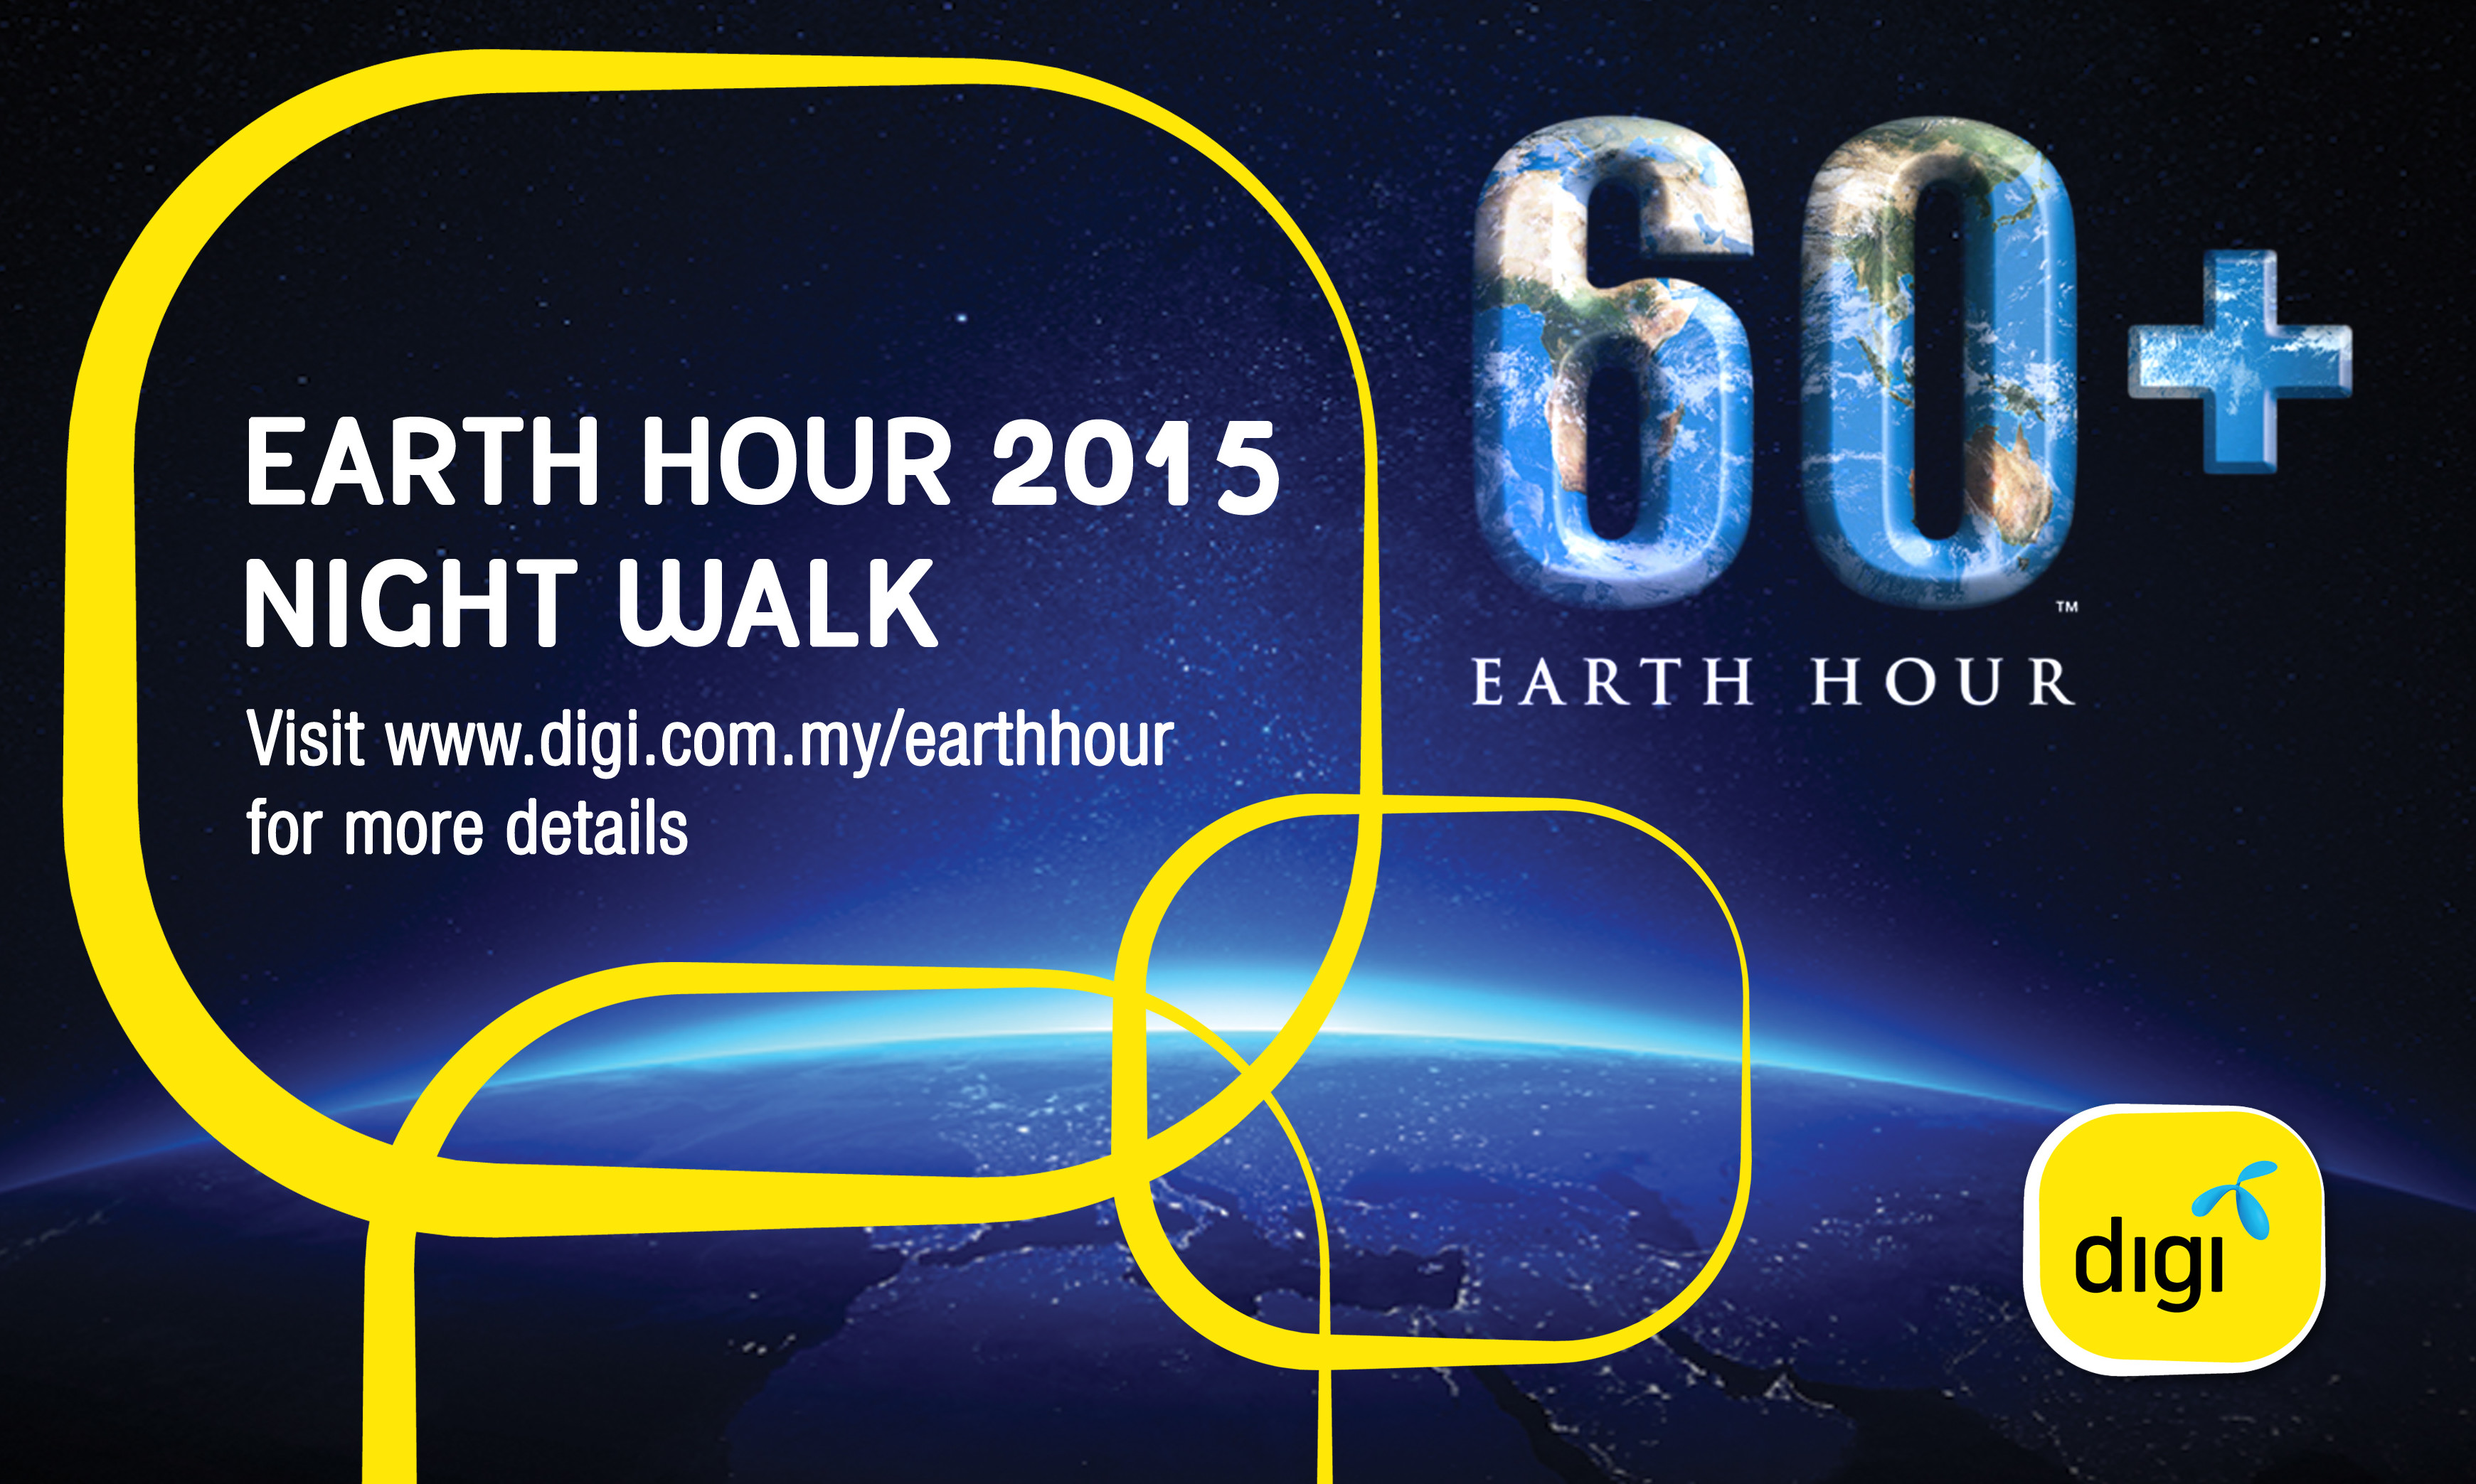 Digi-earth-hour-2015-night-walk-e1424224001875.jpg